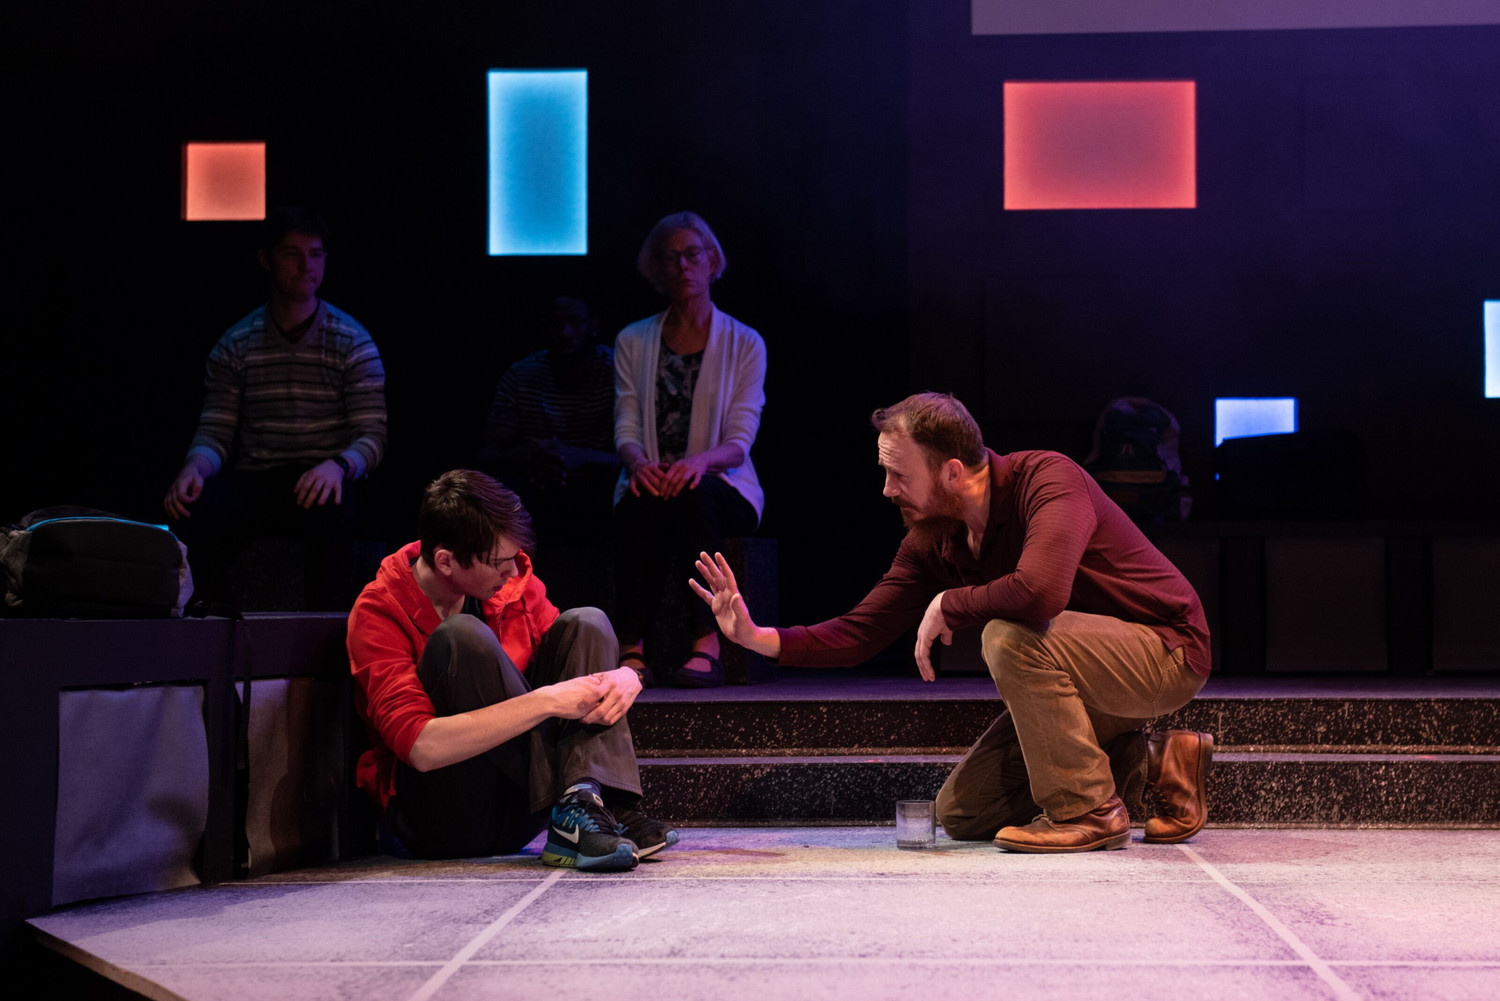 BWW Review: THE CURIOUS INCIDENT OF THE DOG IN THE NIGHT-TIME at FMCT